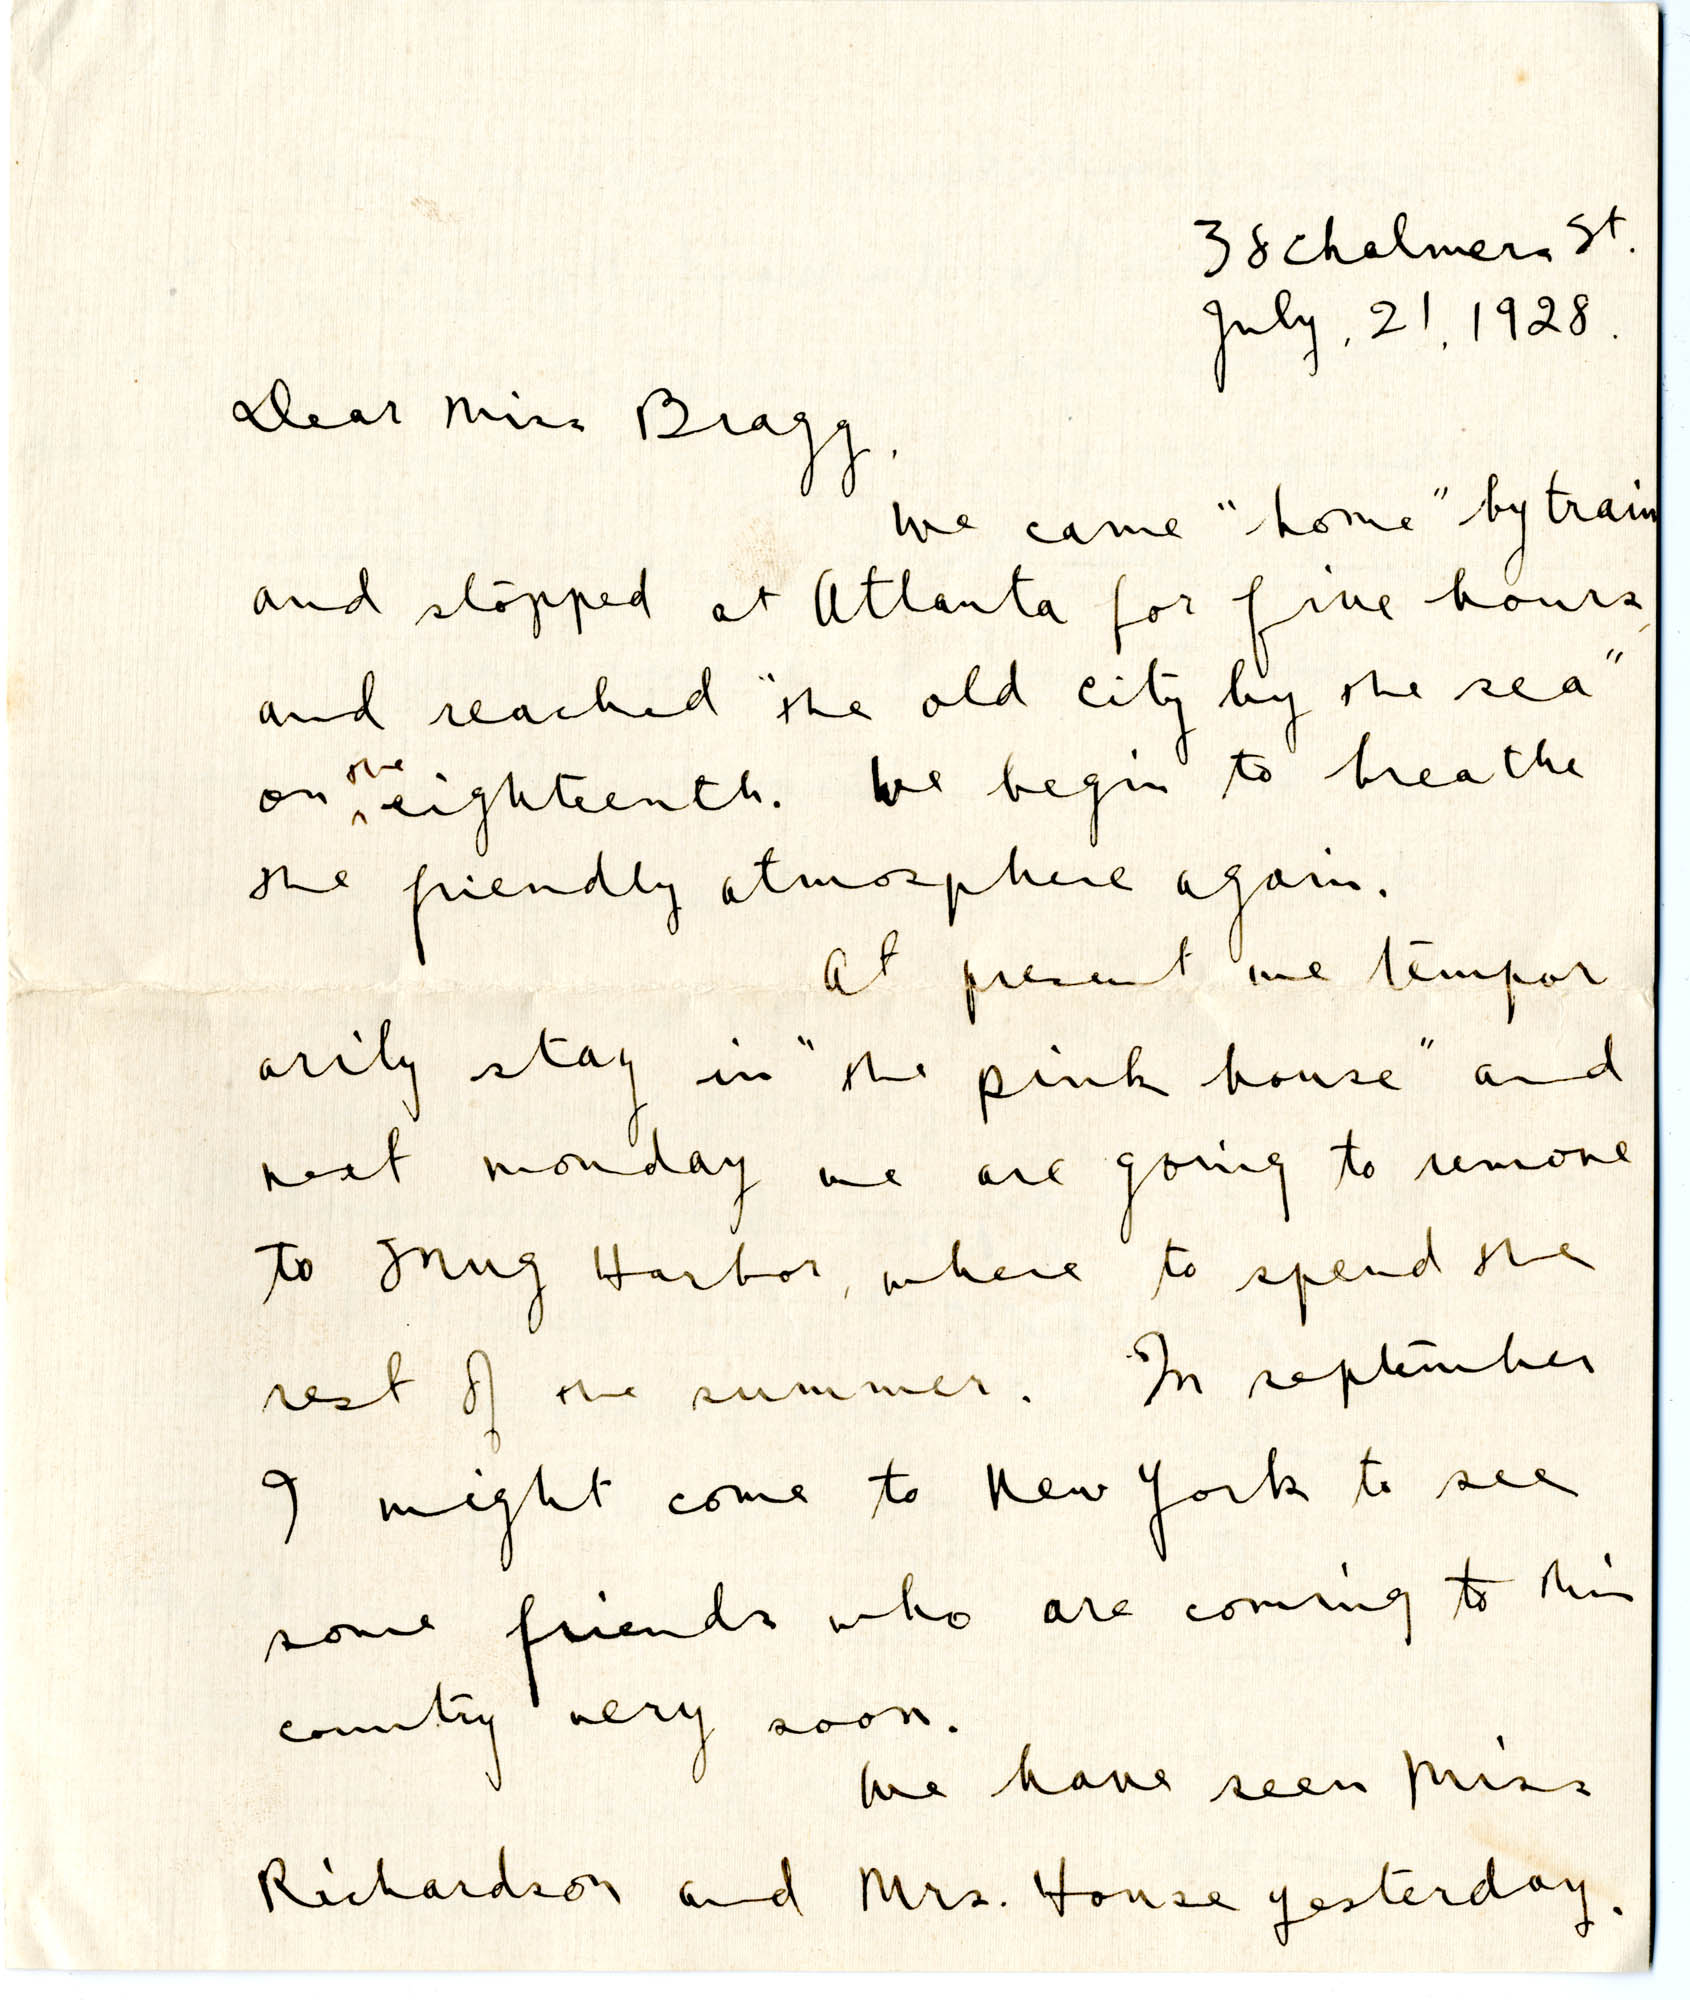 Letter from C.C. Tseng to Laura M. Bragg, July 21, 1928